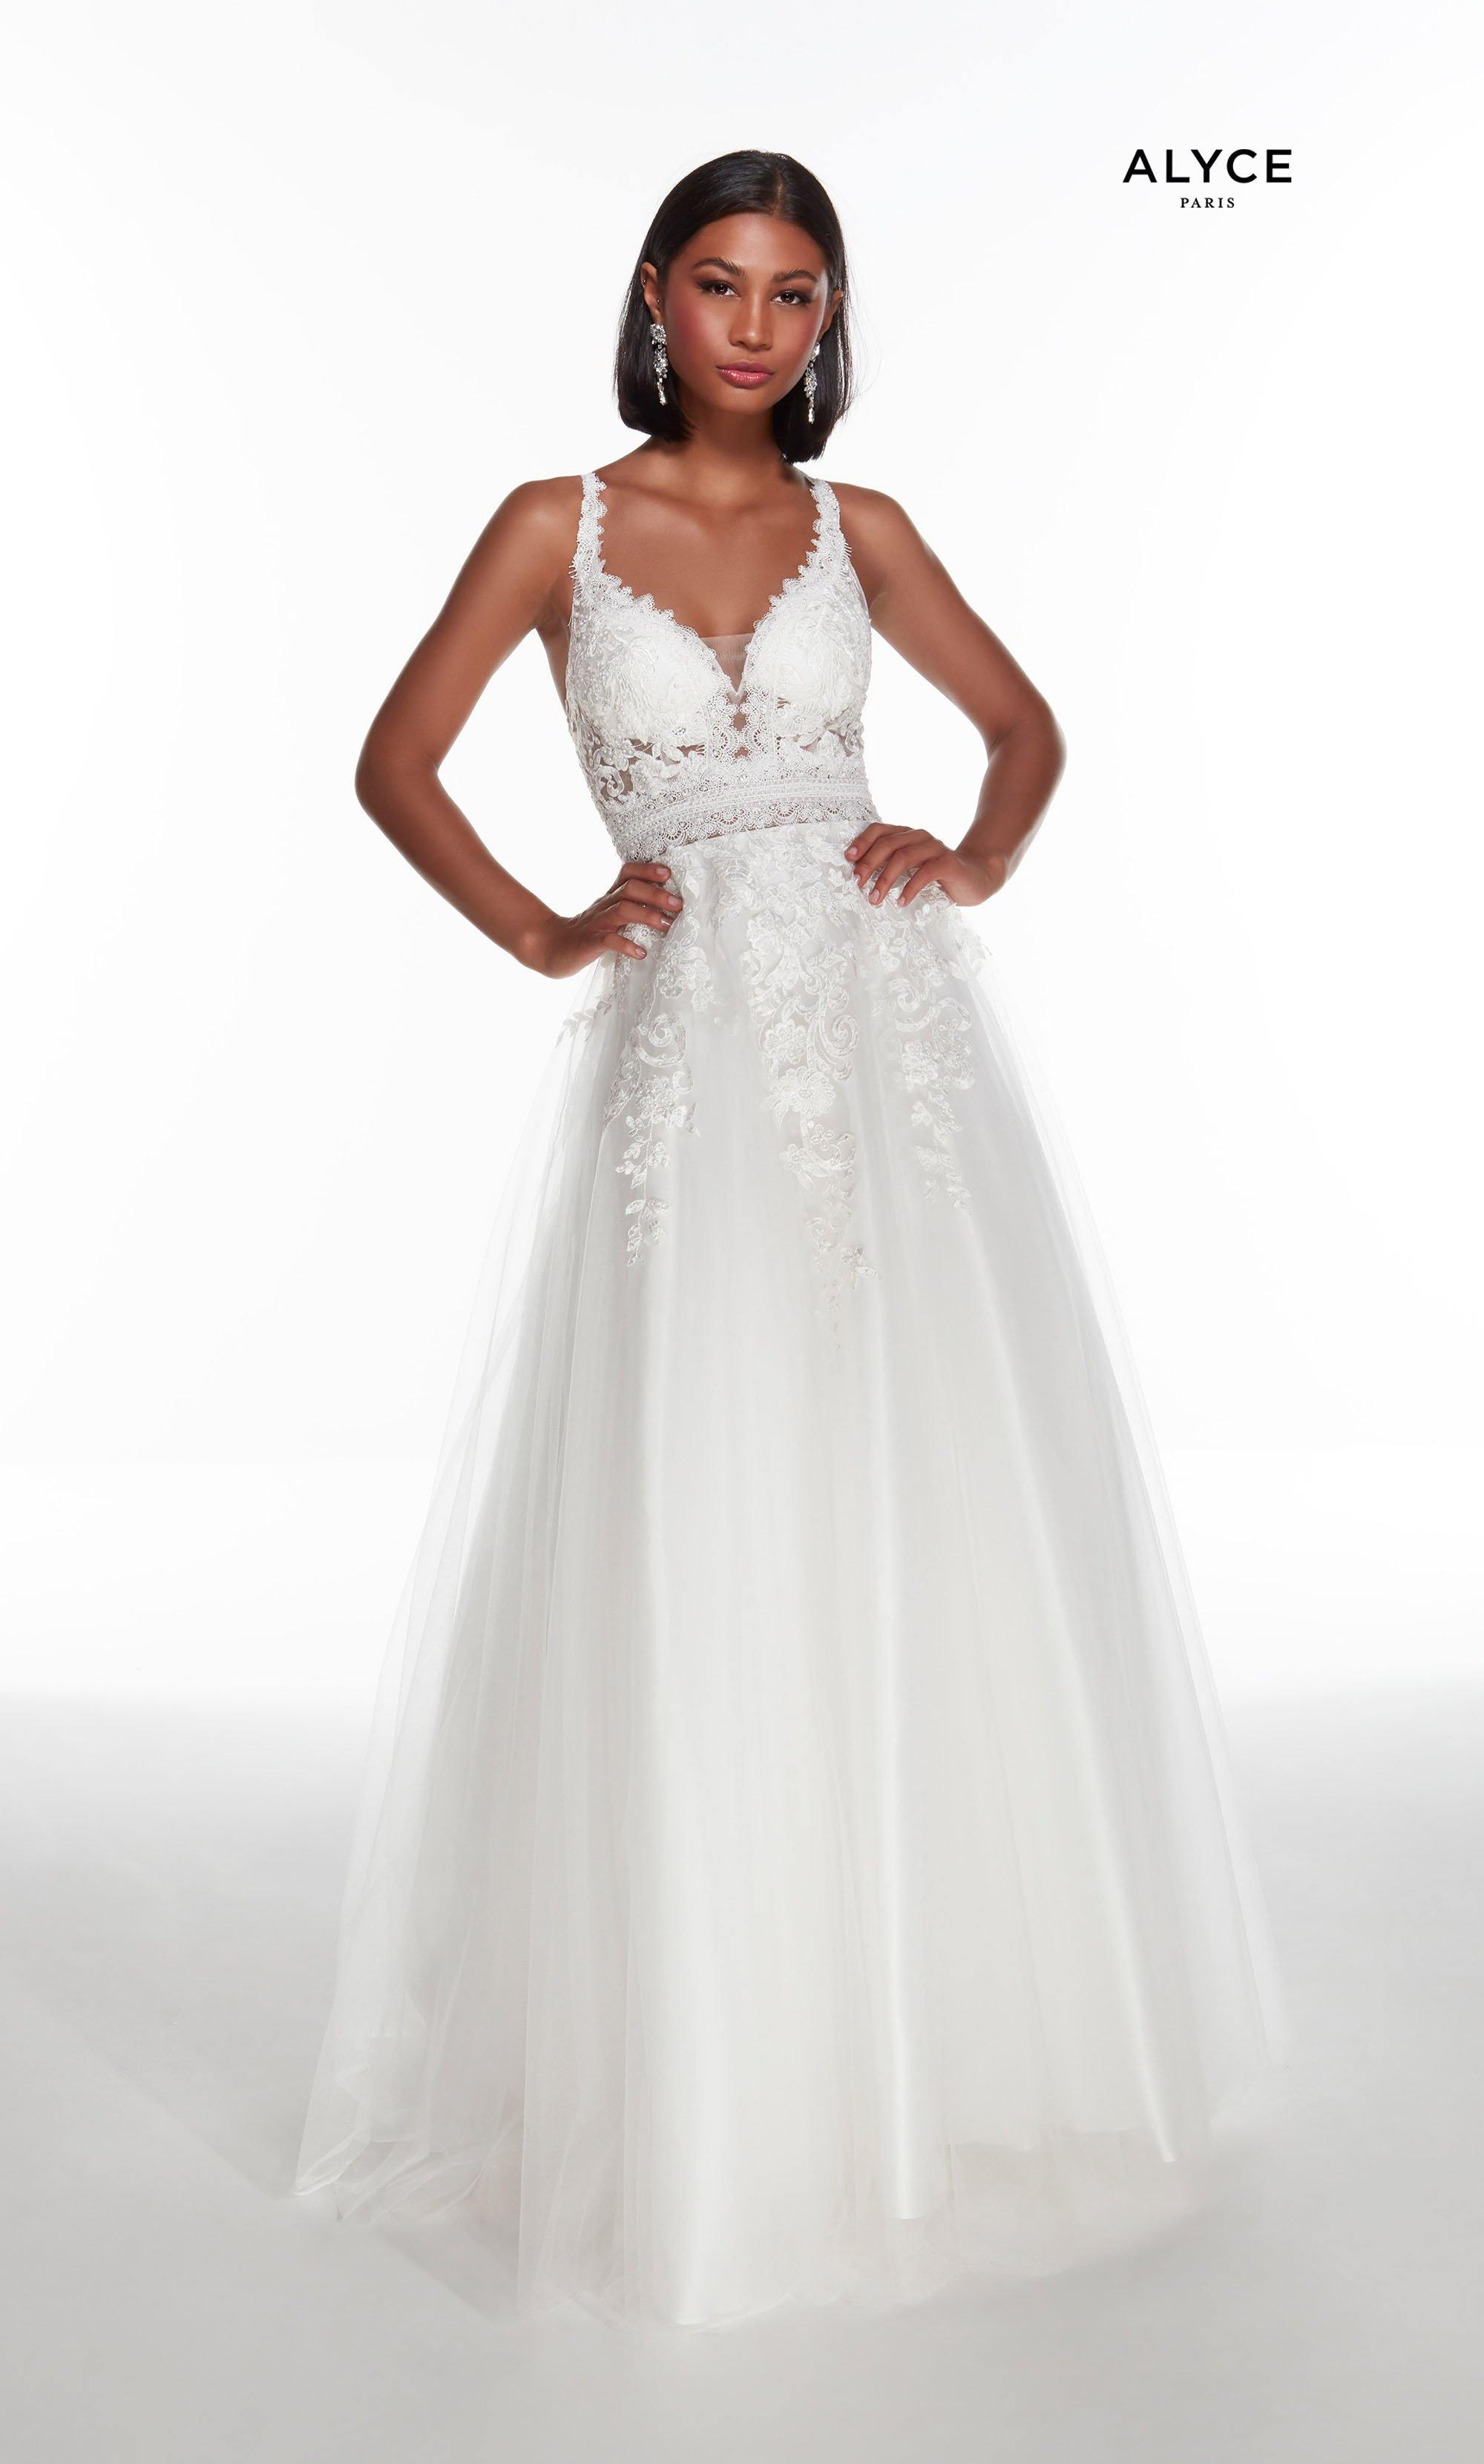 Diamond White embroidered tulle A line wedding dress with a plunging neckline